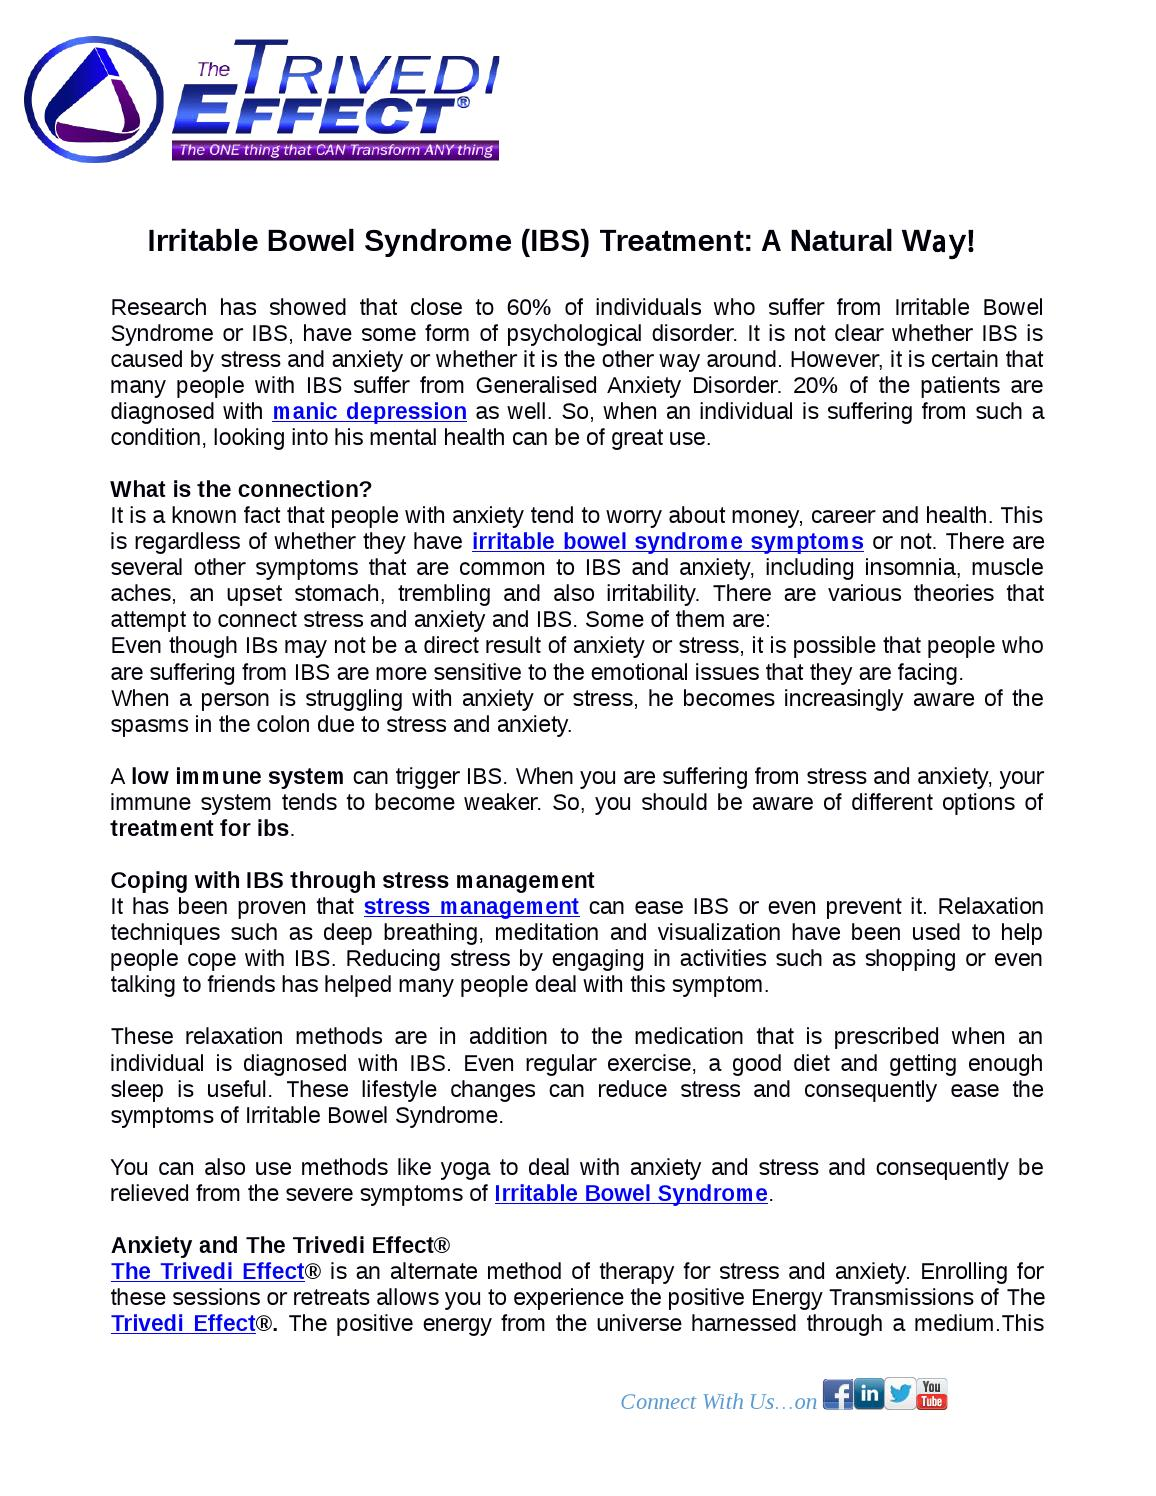 Irritable Bowel Syndrome (IBS) Treatment: A Natural Way! by